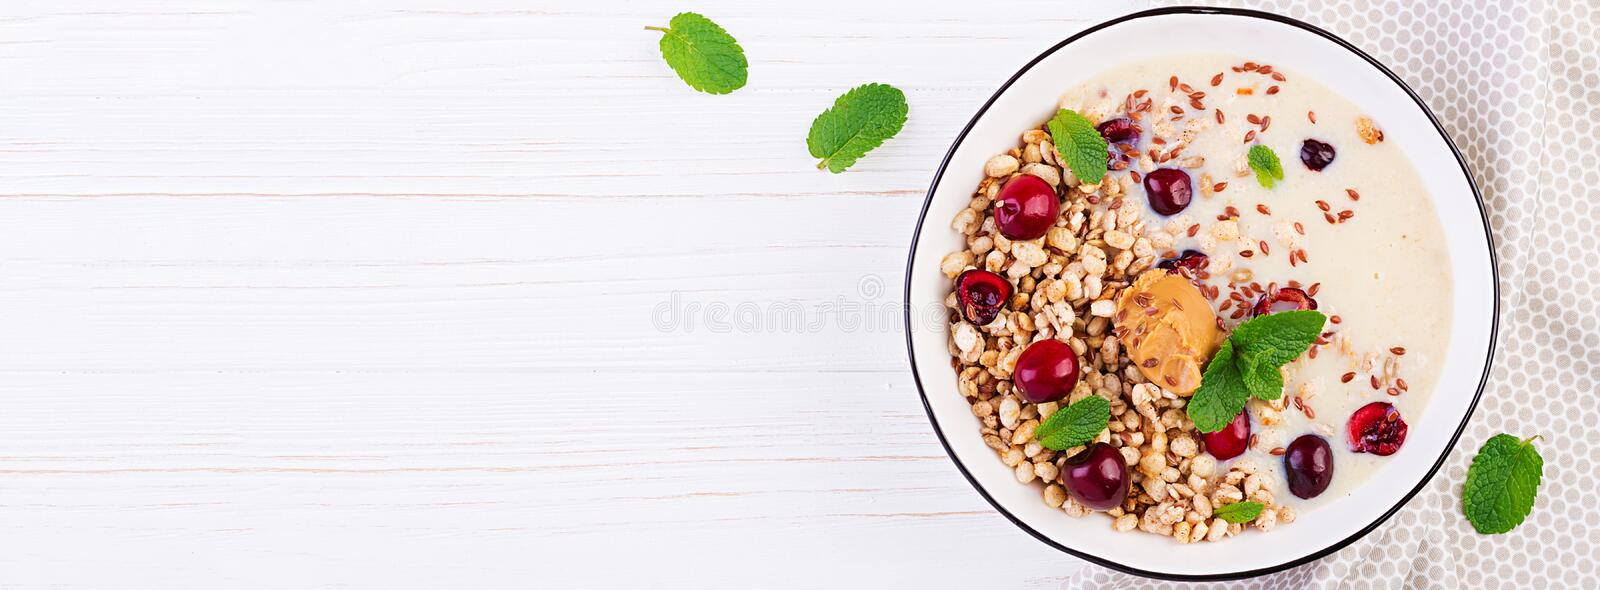 Breakfast. Bowl of homemade granola with banana mashed and fresh berries. Table setting. Healthy food. Banner. Top view stock photography